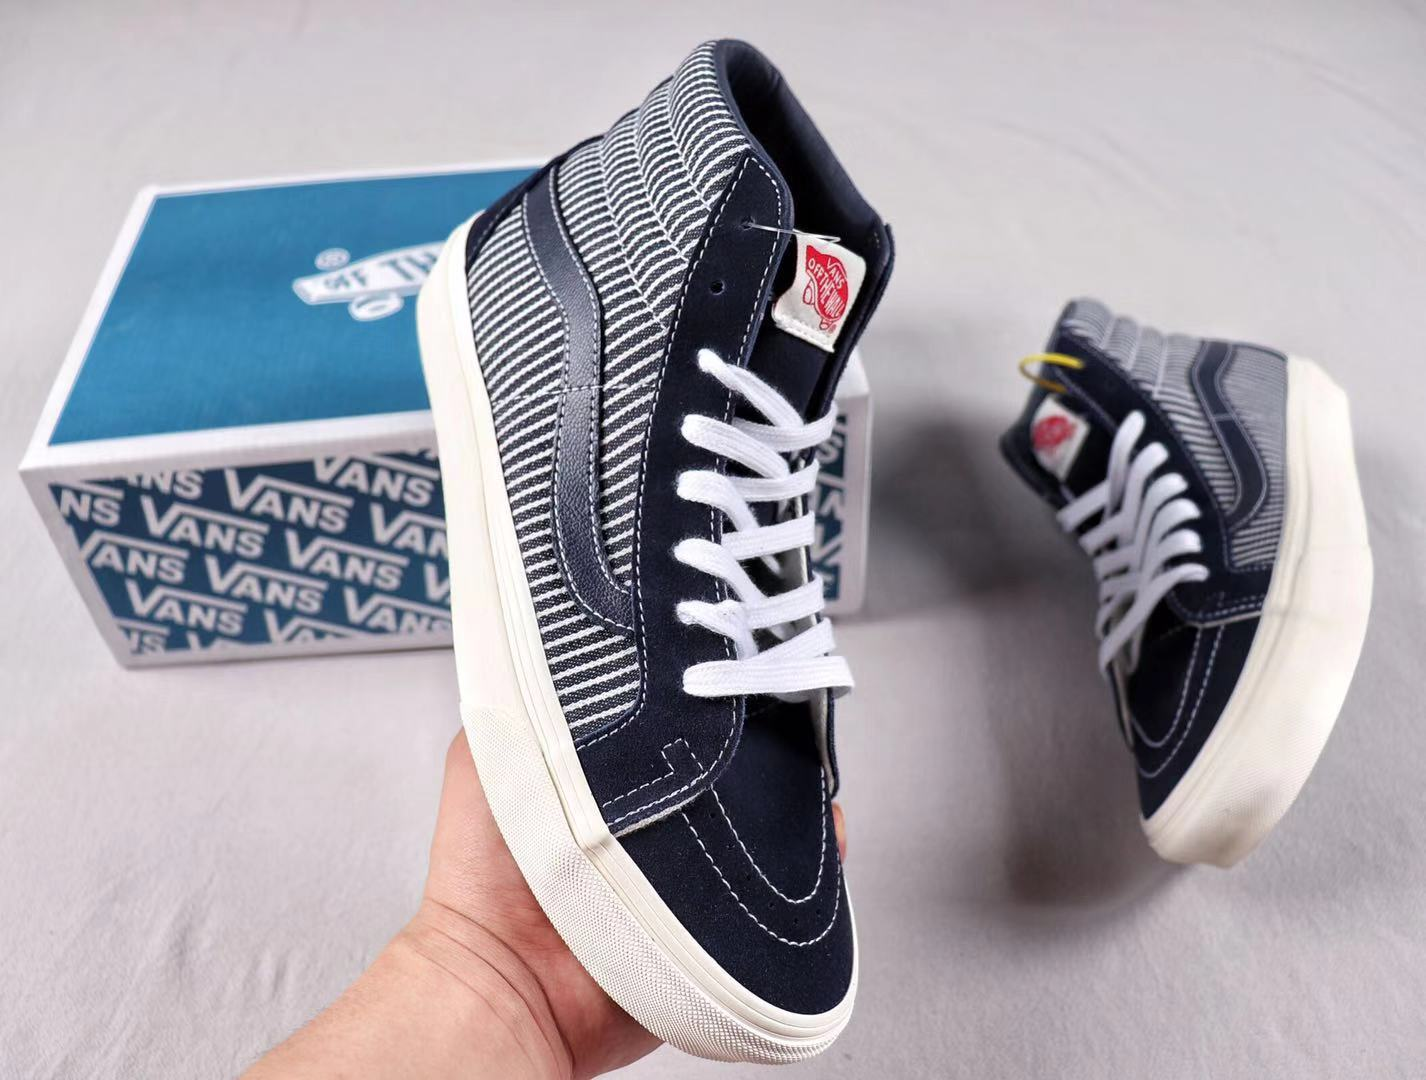 """Vans Vault """"Mt.Vernon"""" Pack Light Blue/White Lifestyle Shoes To Buy"""